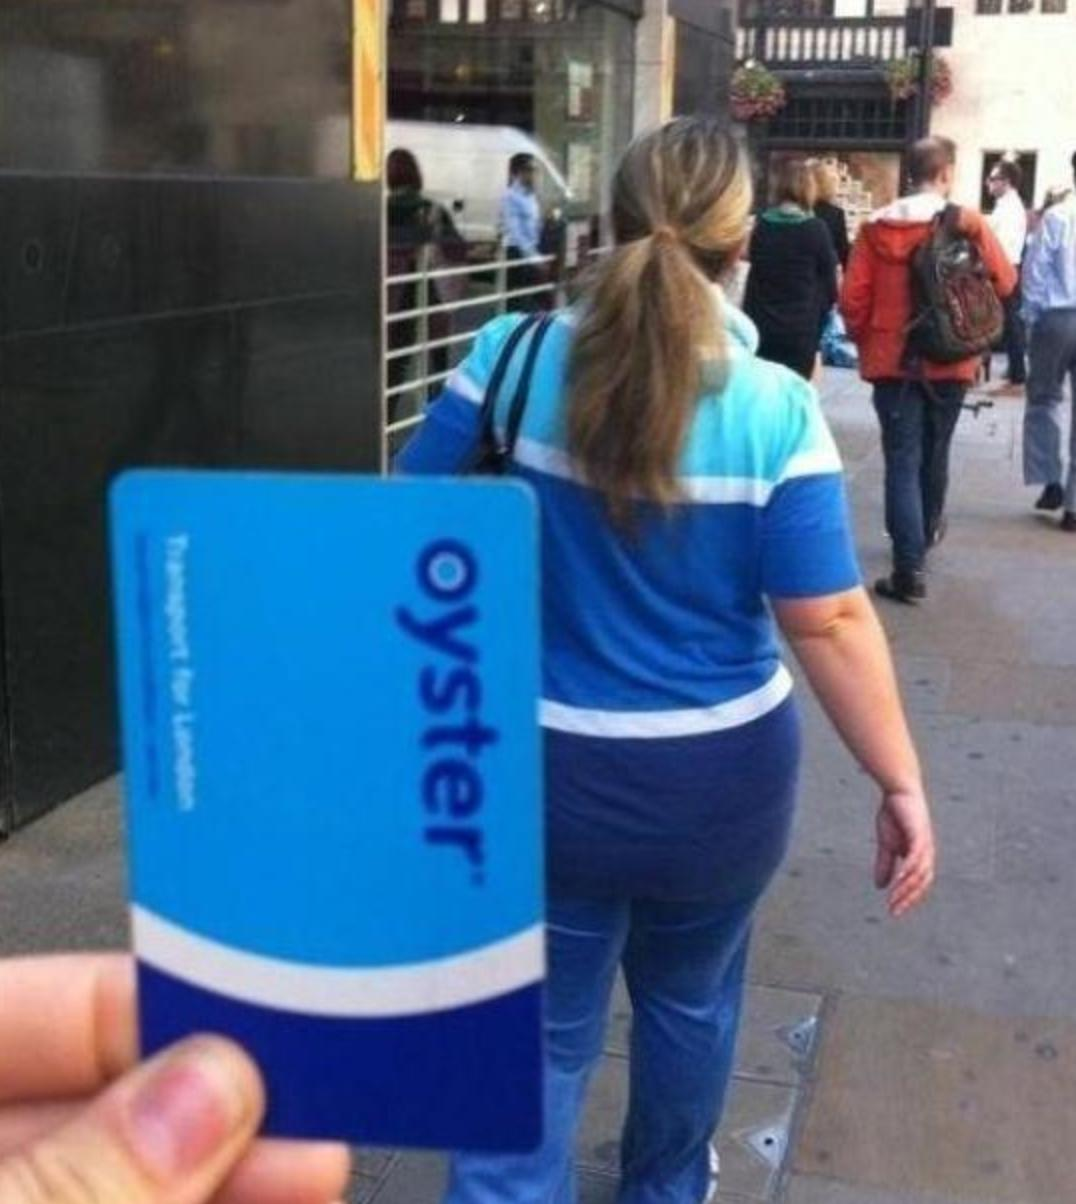 That awkward moment when you're dressed like an Oyster card